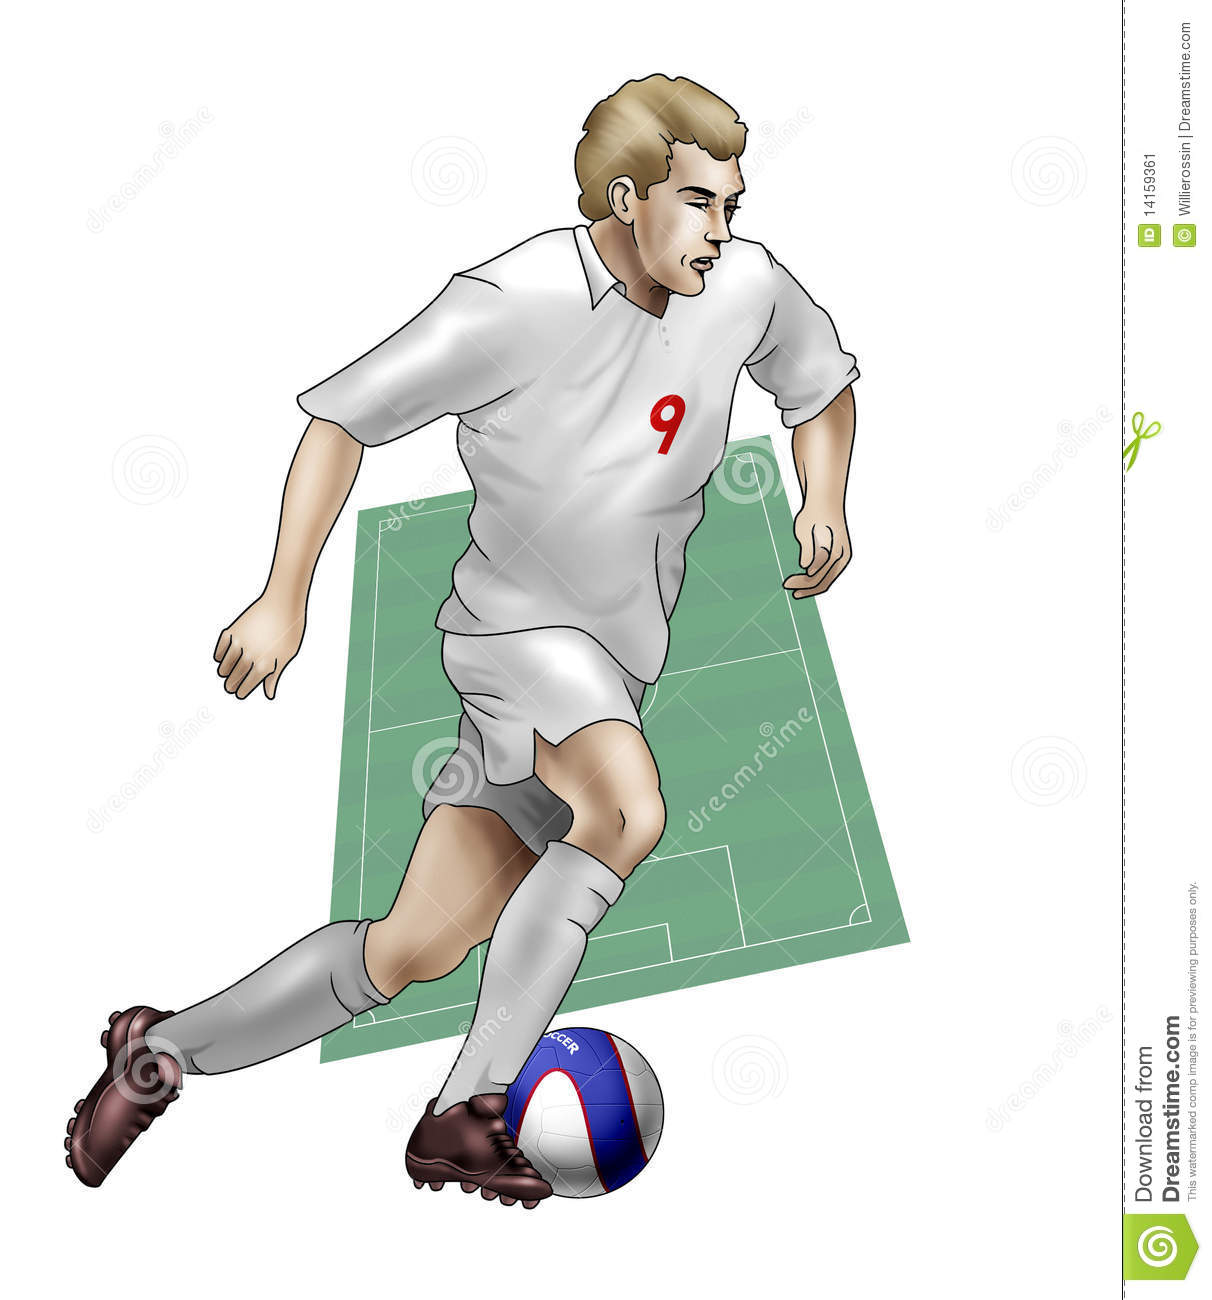 how to become a soccer player in england